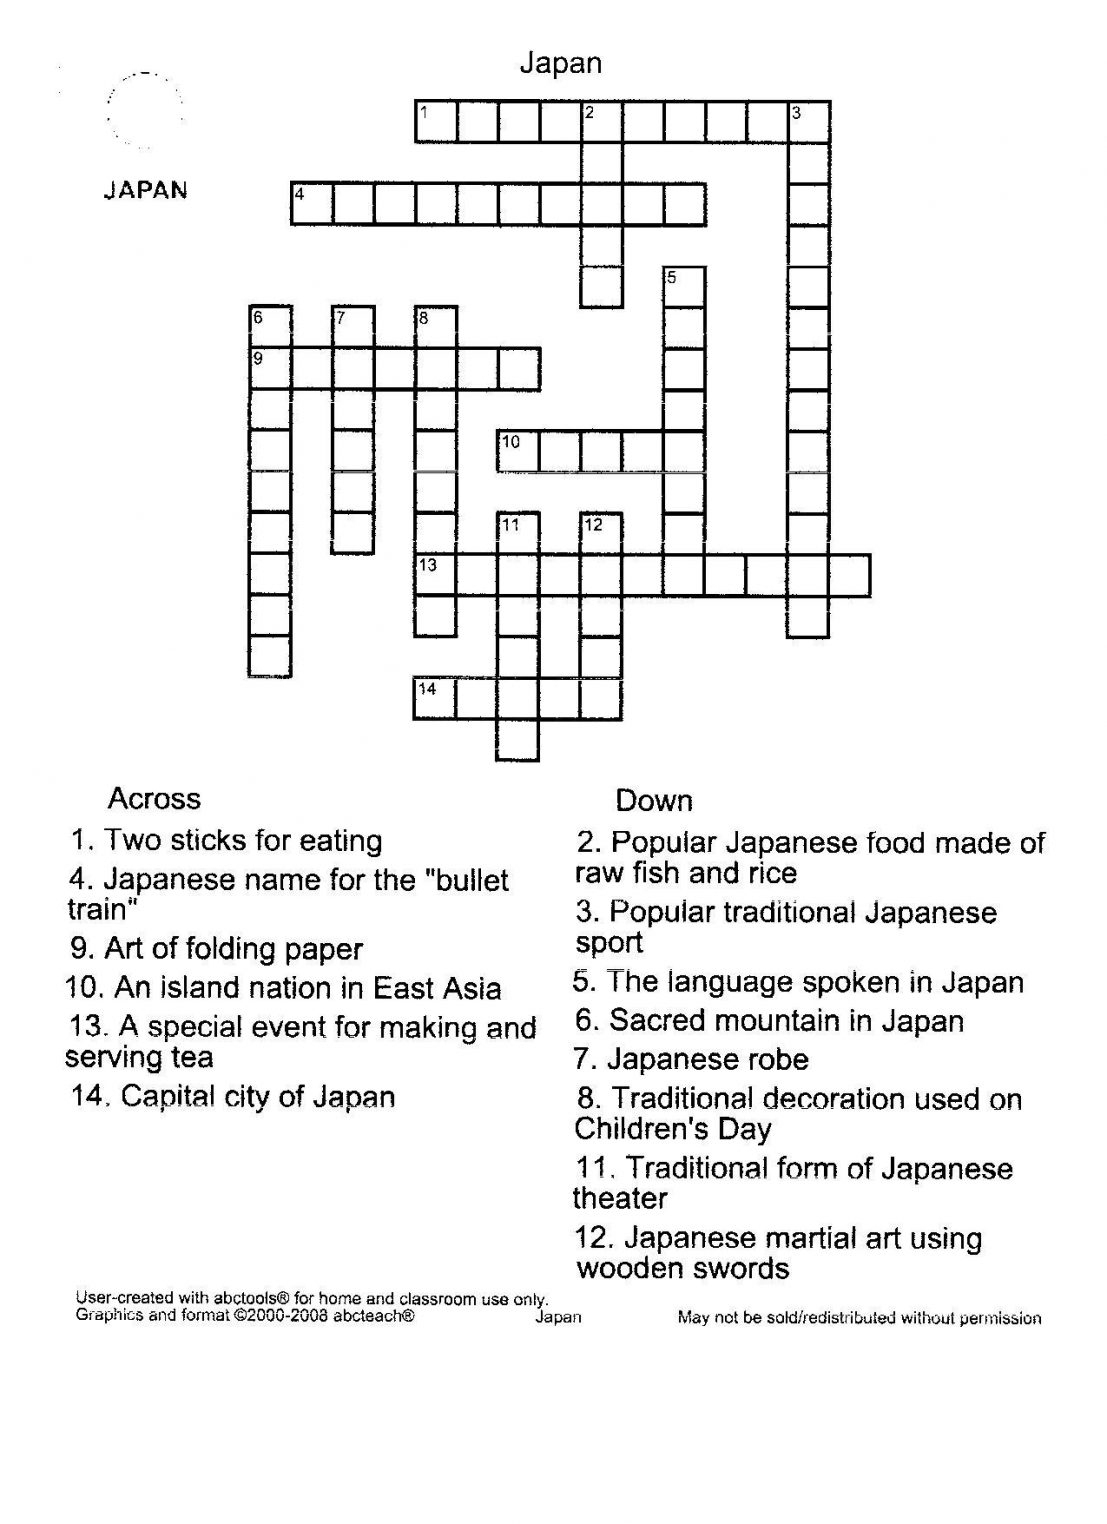 Free Crossword Puzzle Maker Printable - Hashtag Bg - Free Crossword - Printable Japanese Crosswords